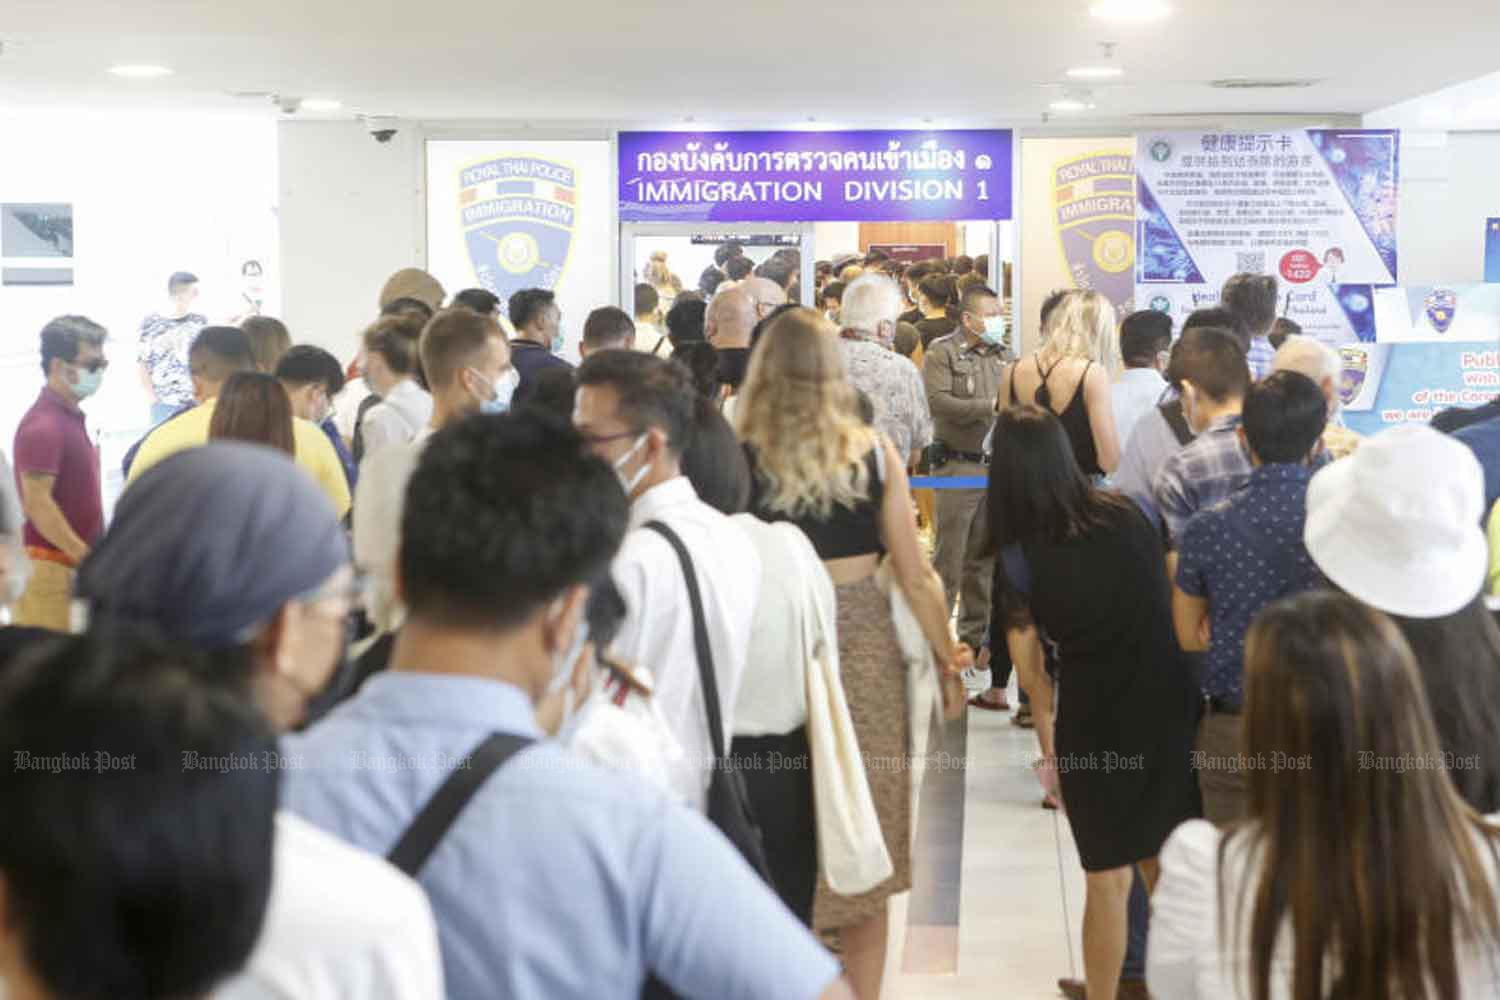 Foreigners form long queues outside the immigration bureau office at the Government Complex in Bangkok in March, waiting to apply for visa extensions and other services after the Covid-19 pandemic disrupted their travel plans. (Photo: Pattarapong Chatpattarasill)